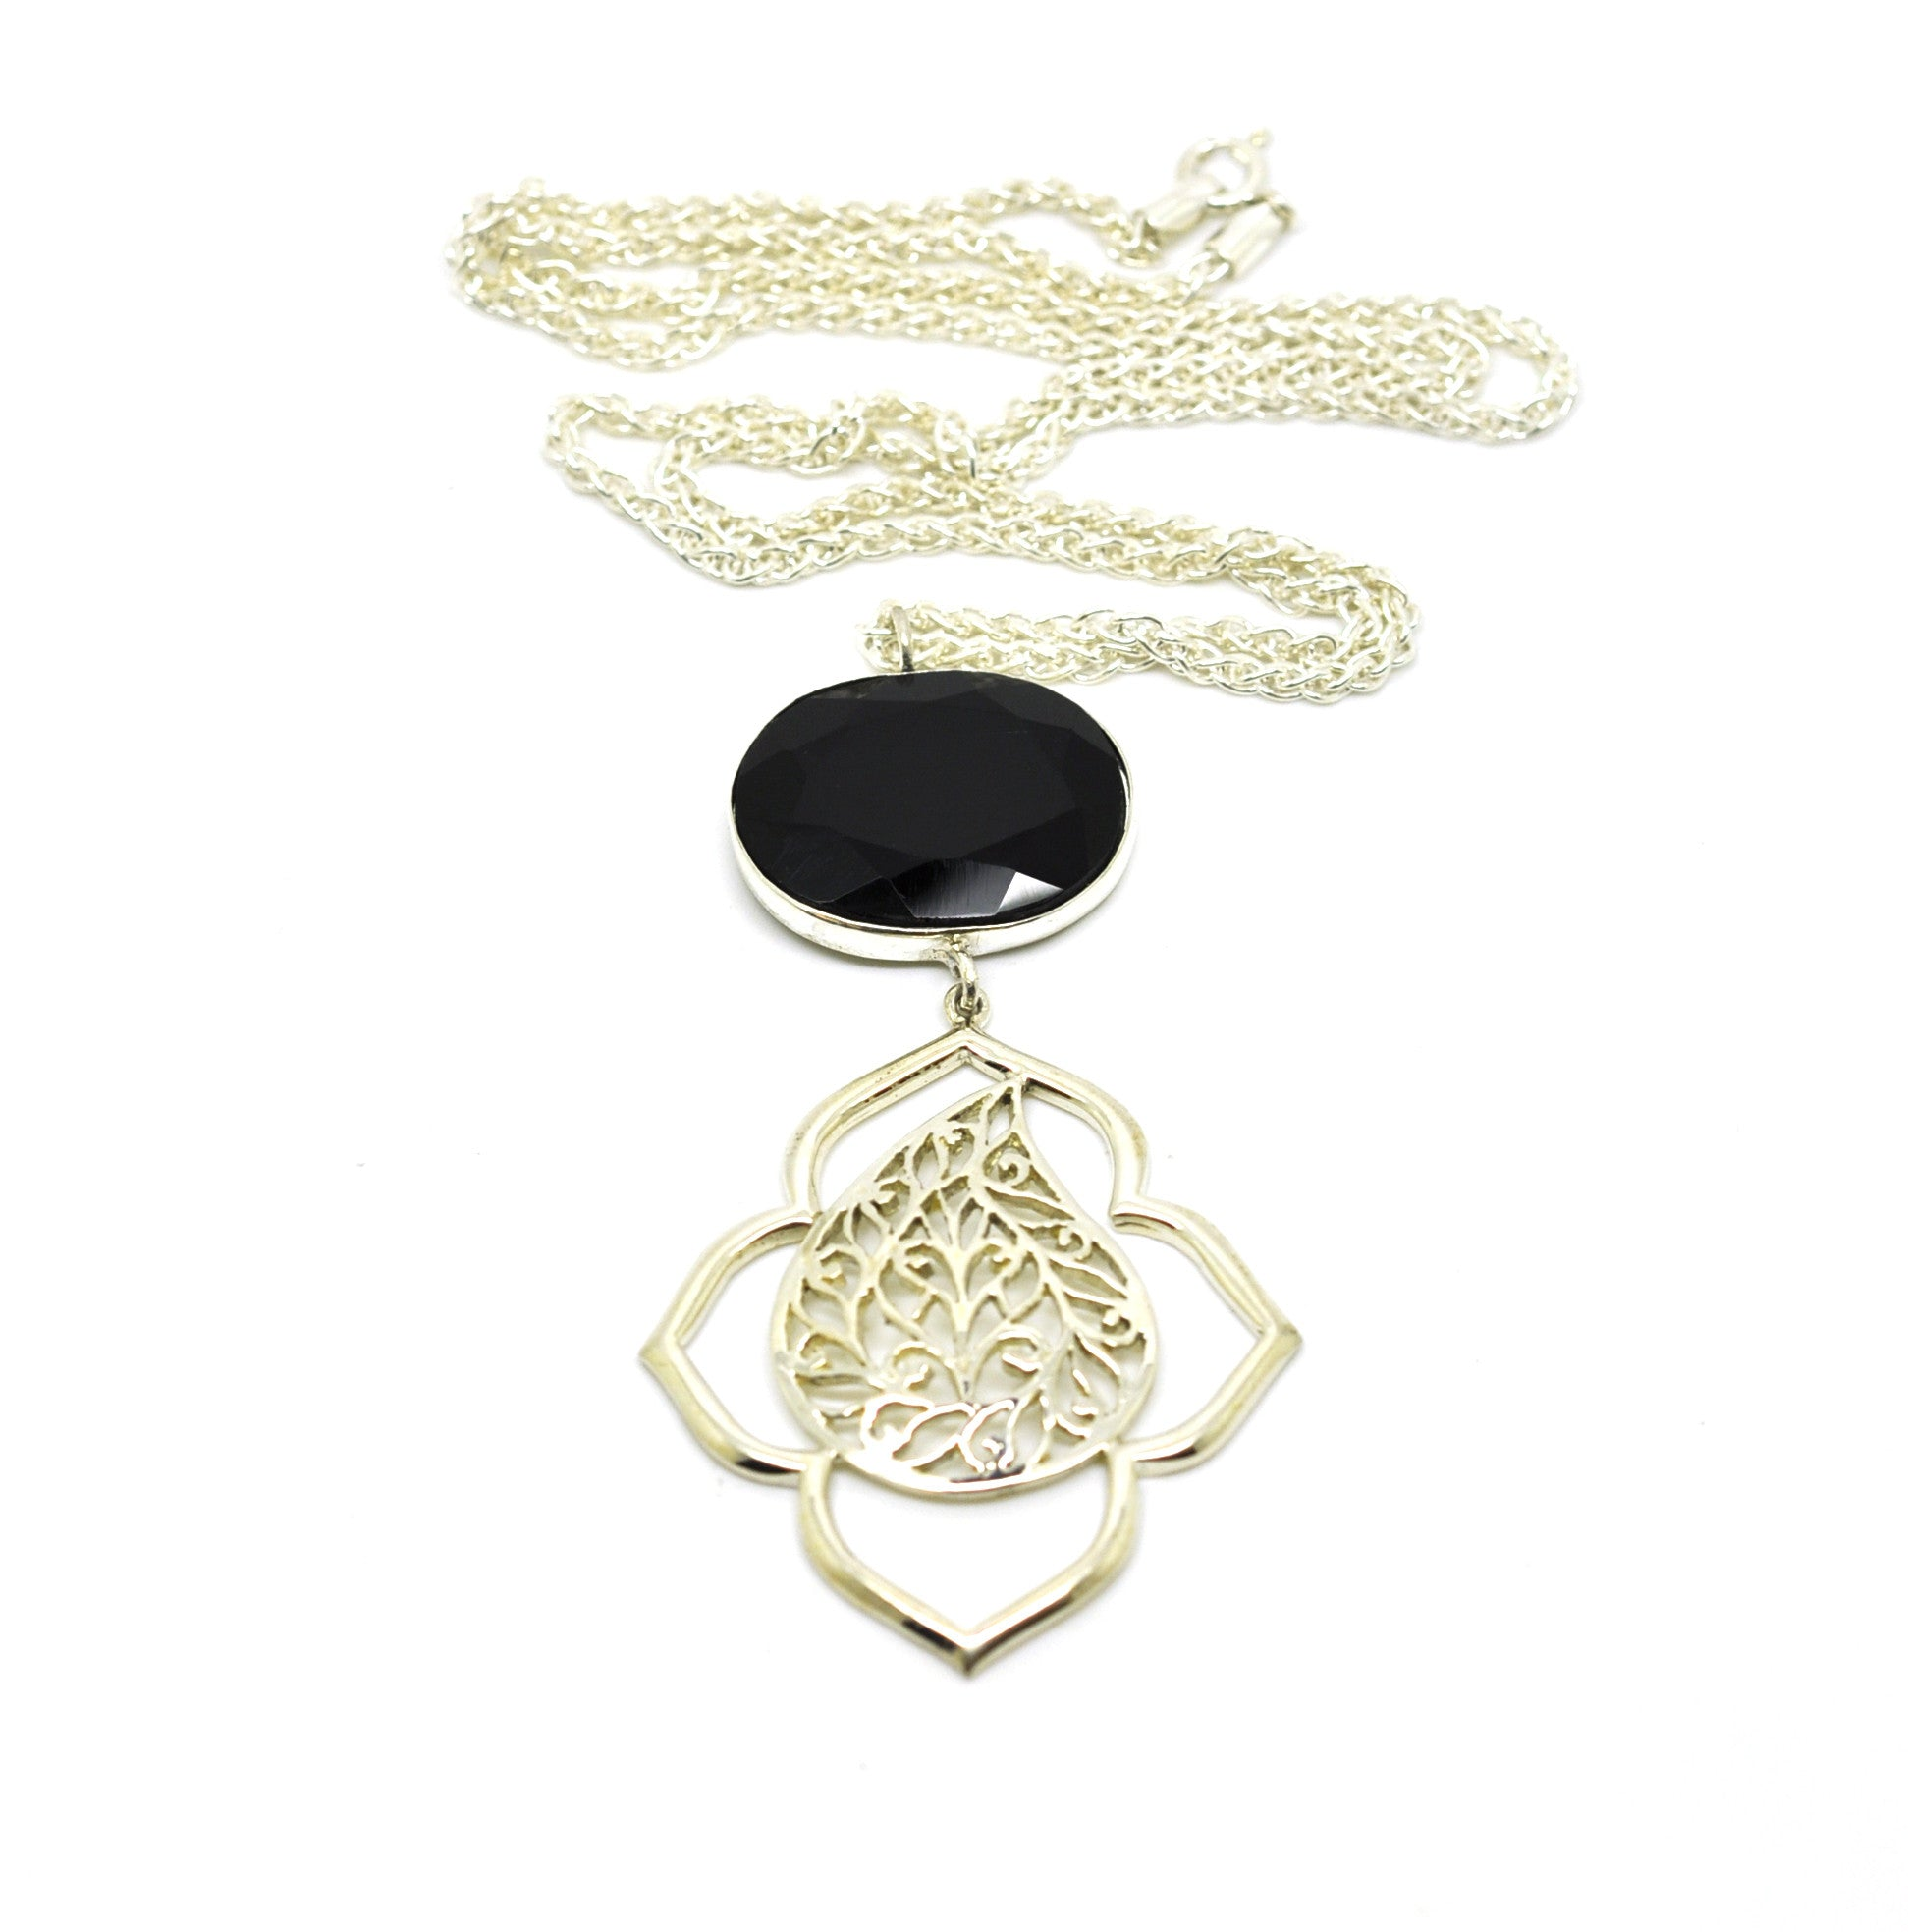 ON SALE - Filigree pendant necklace